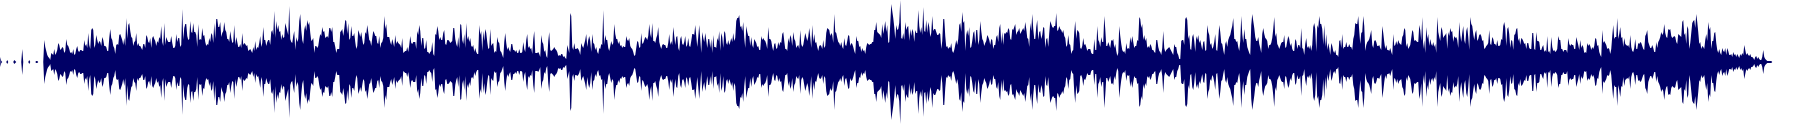 waveform of track #80293